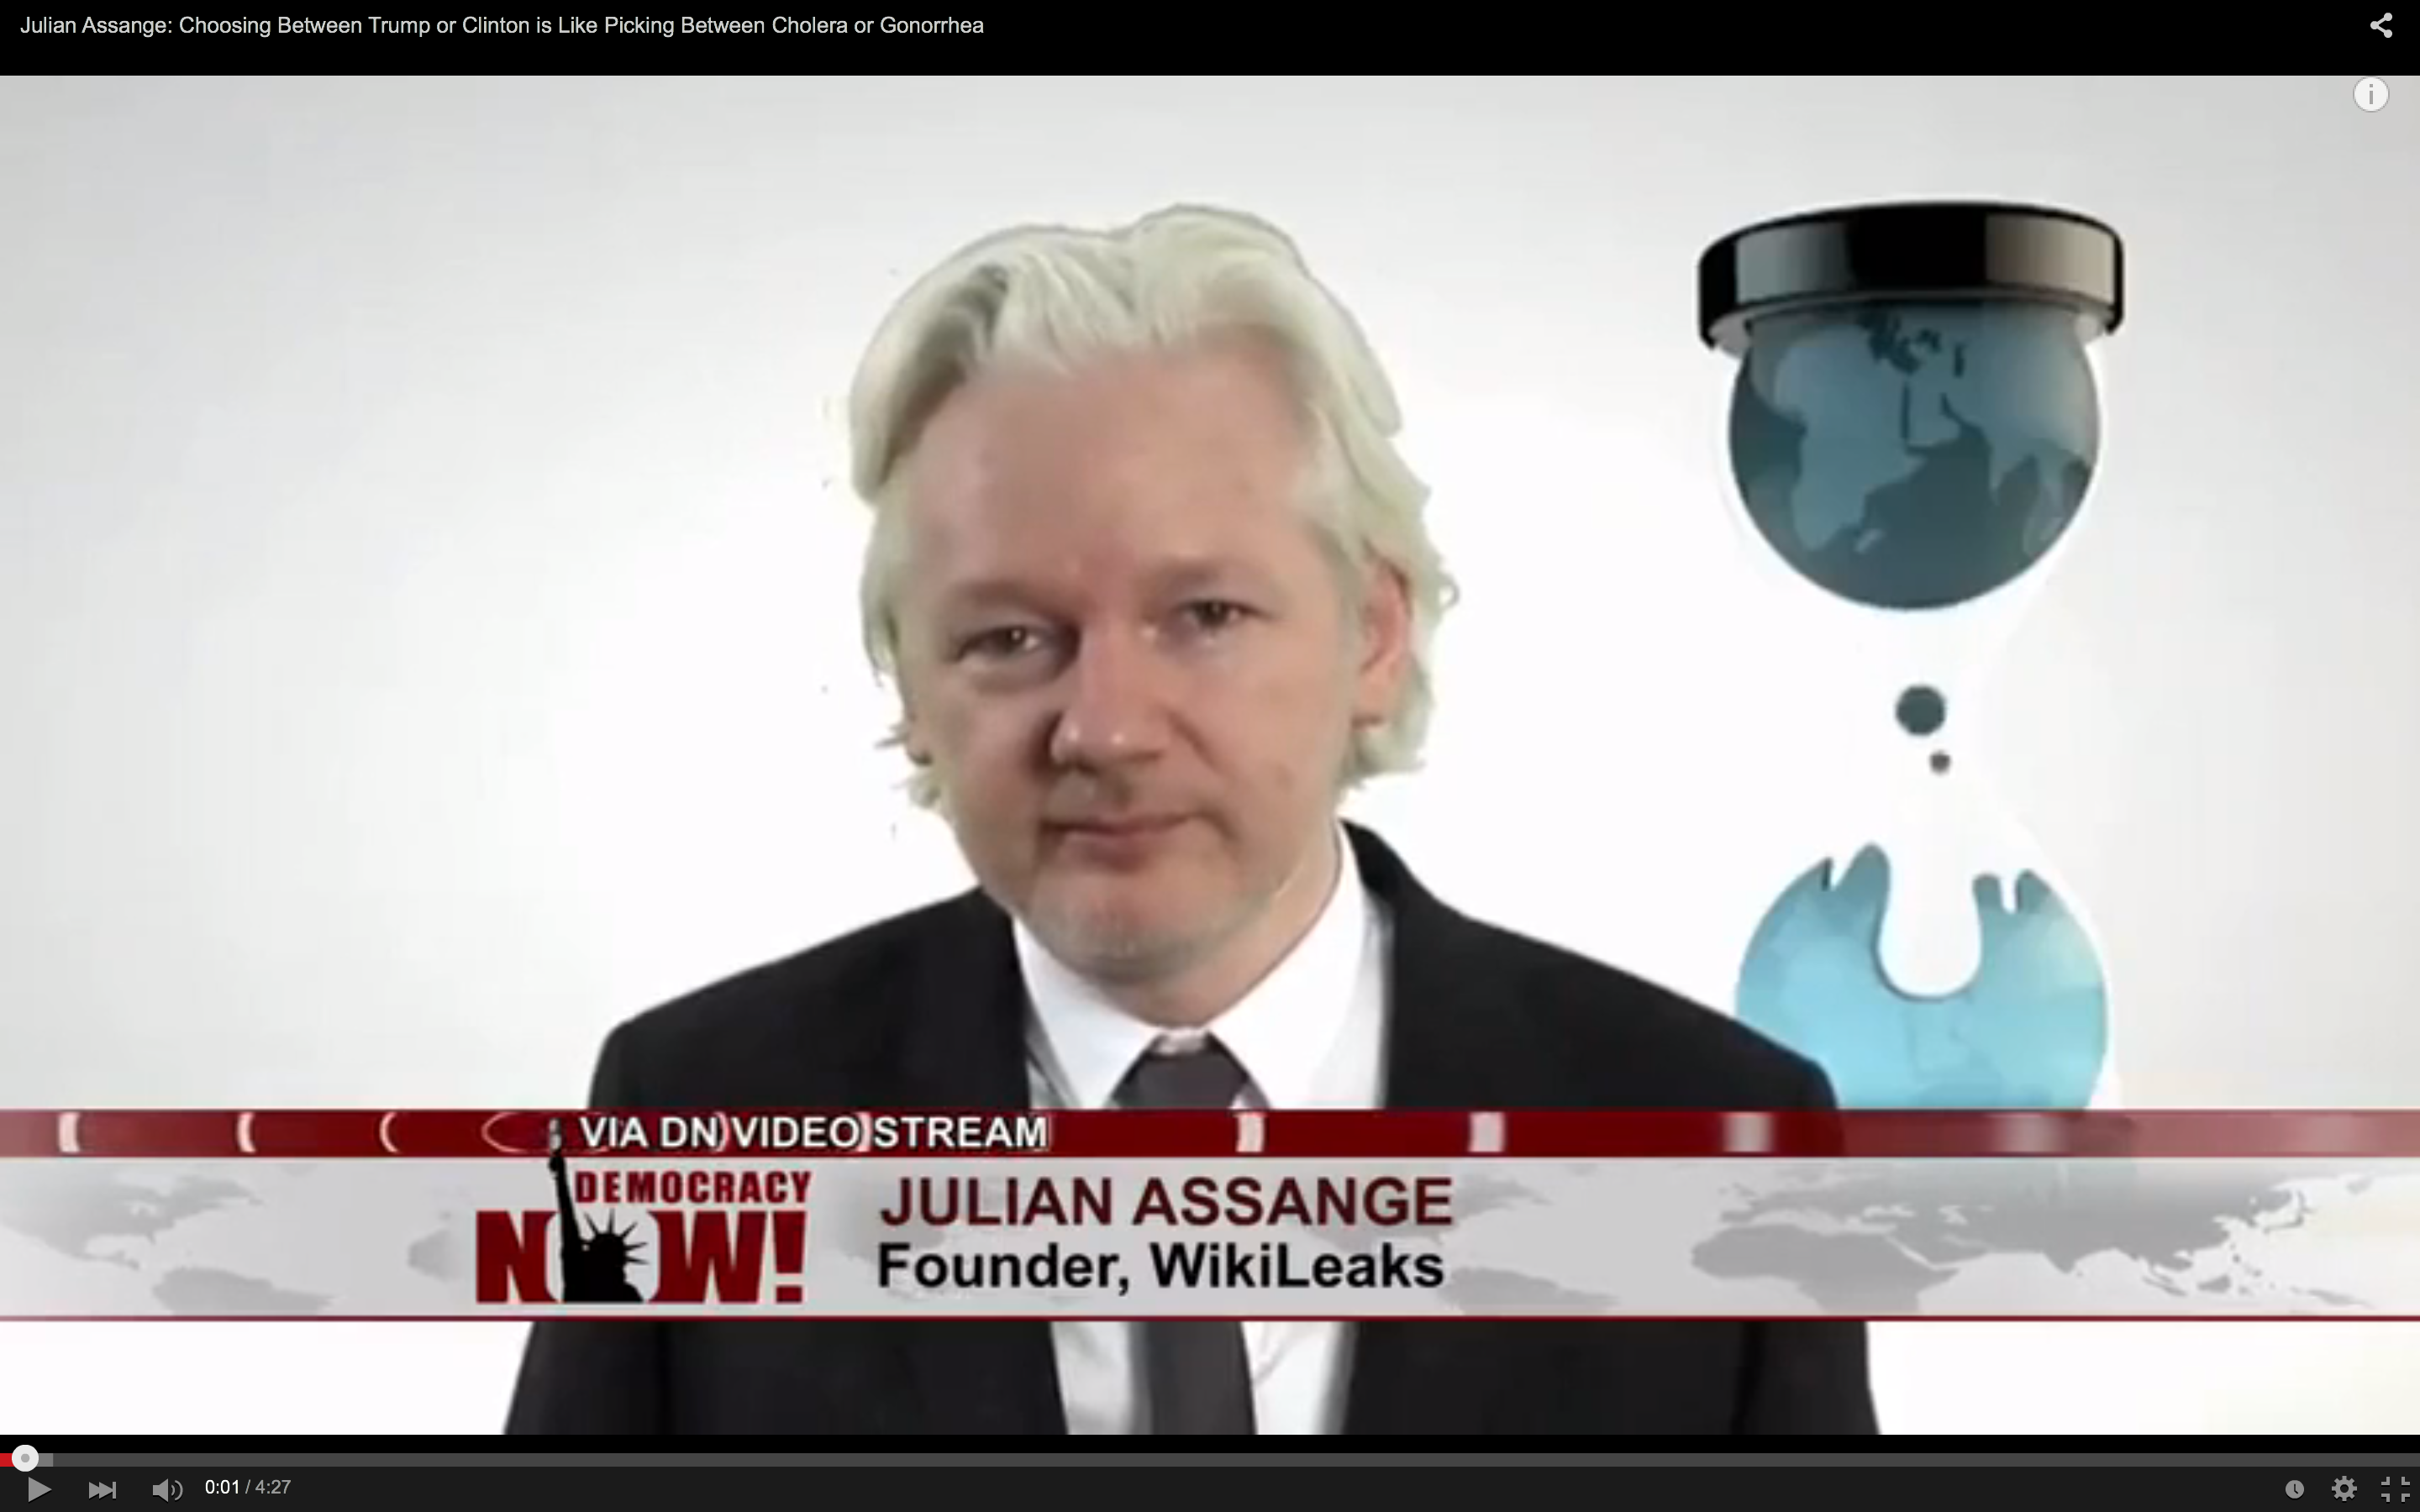 Julian Assange, Democracy Now